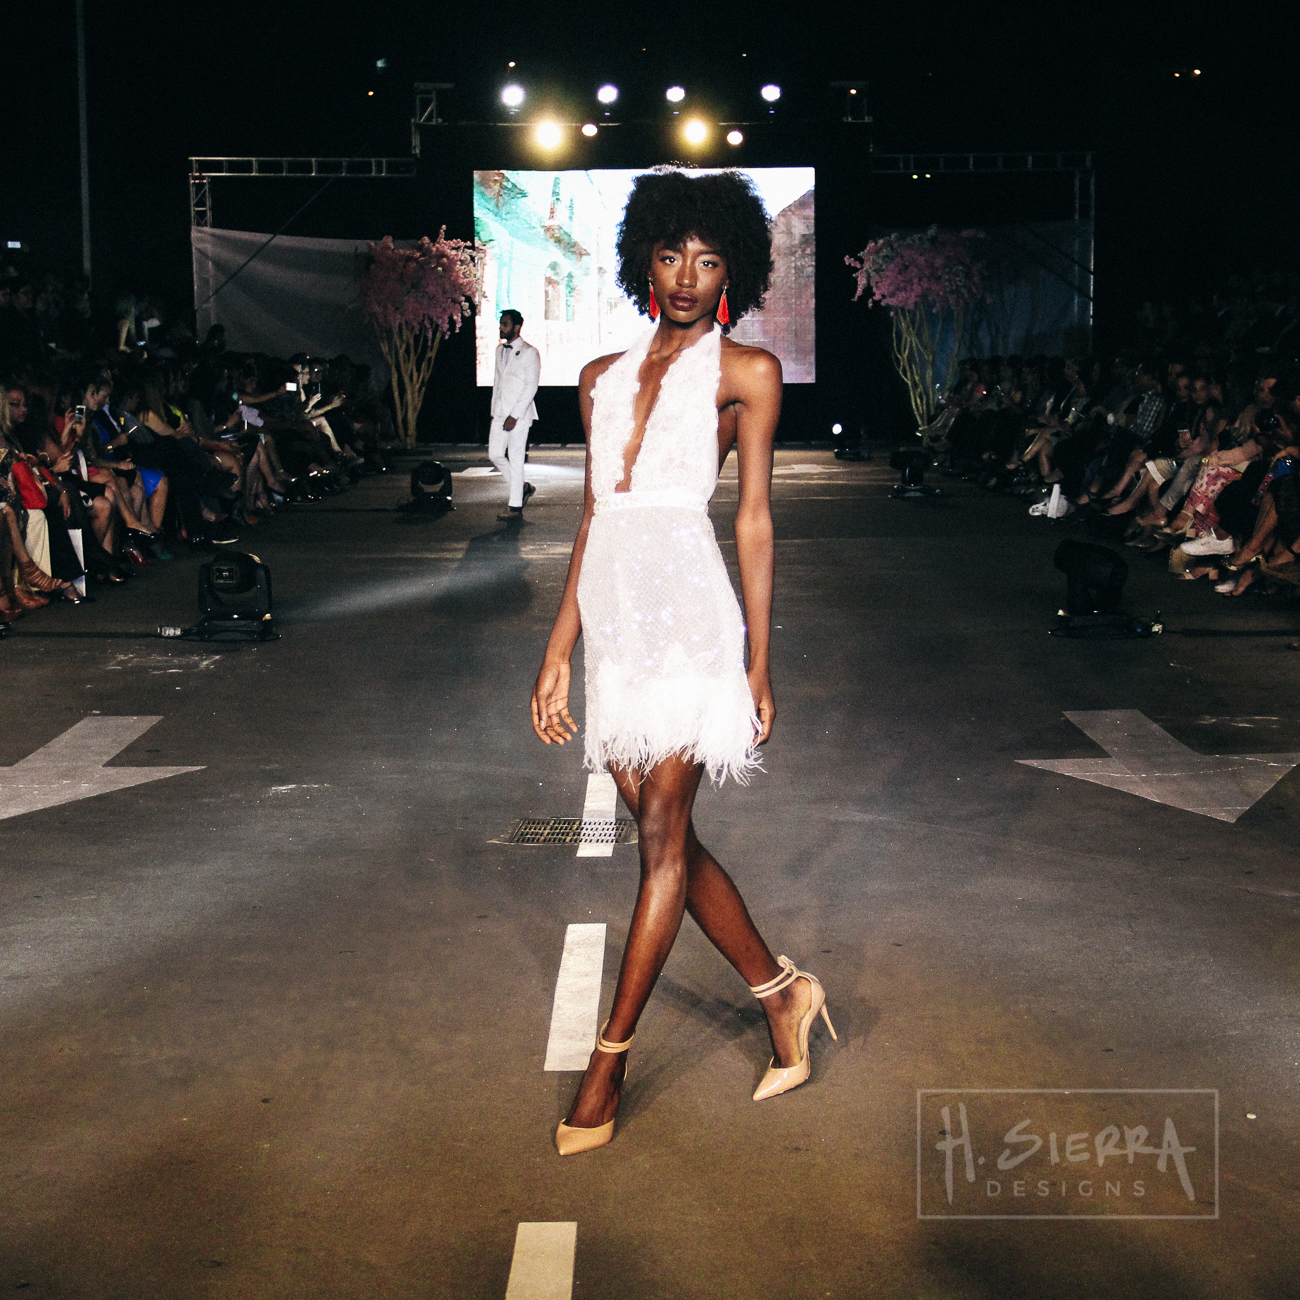 HSD_YOYOBARRIENTOS_RUNWAY-1-46.JPG